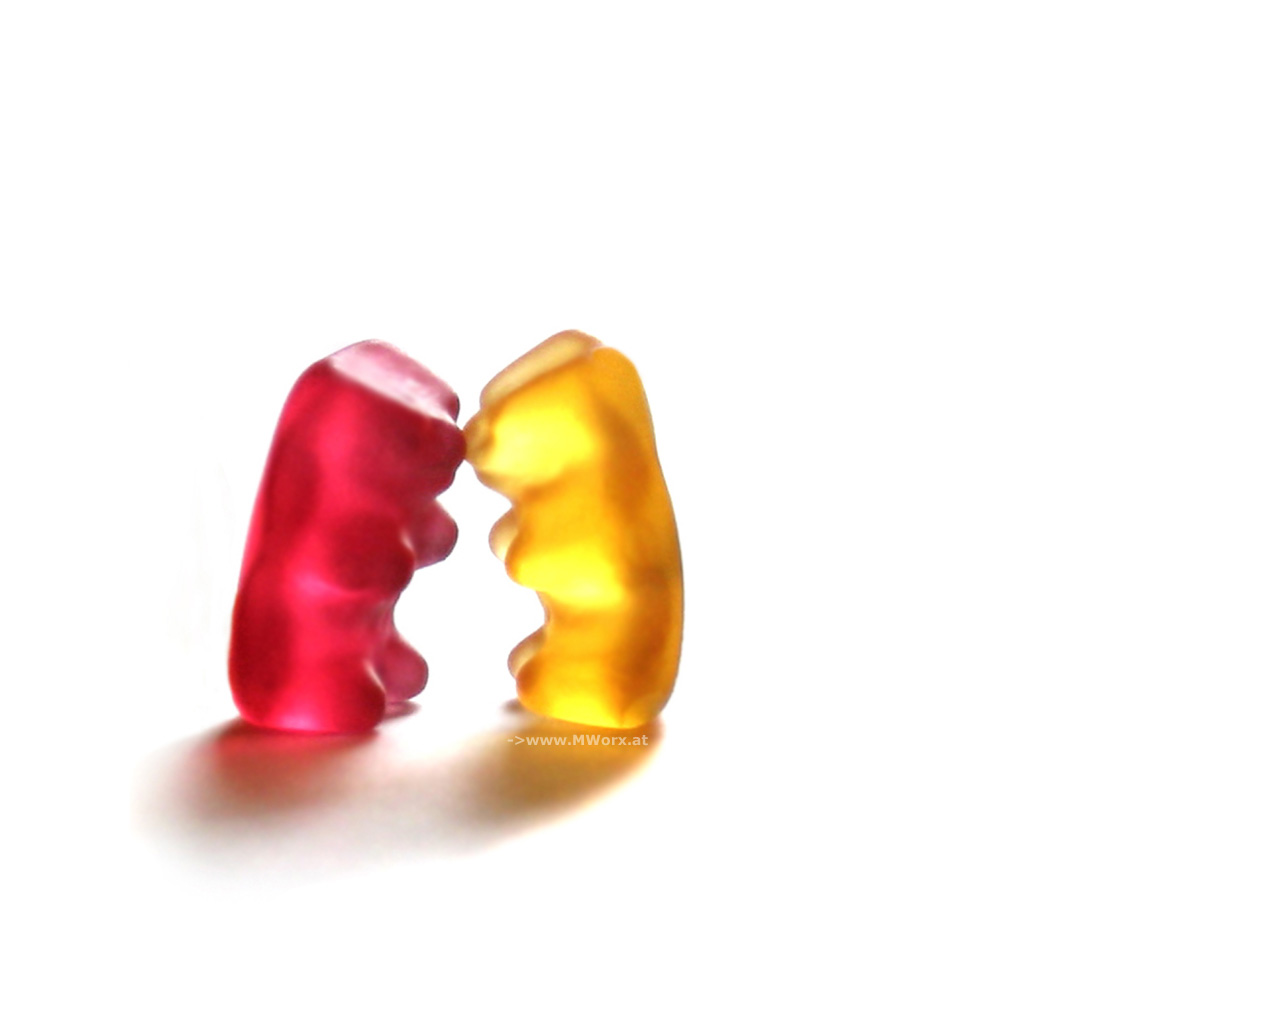 candy images gummy bear kiss hd wallpaper and background